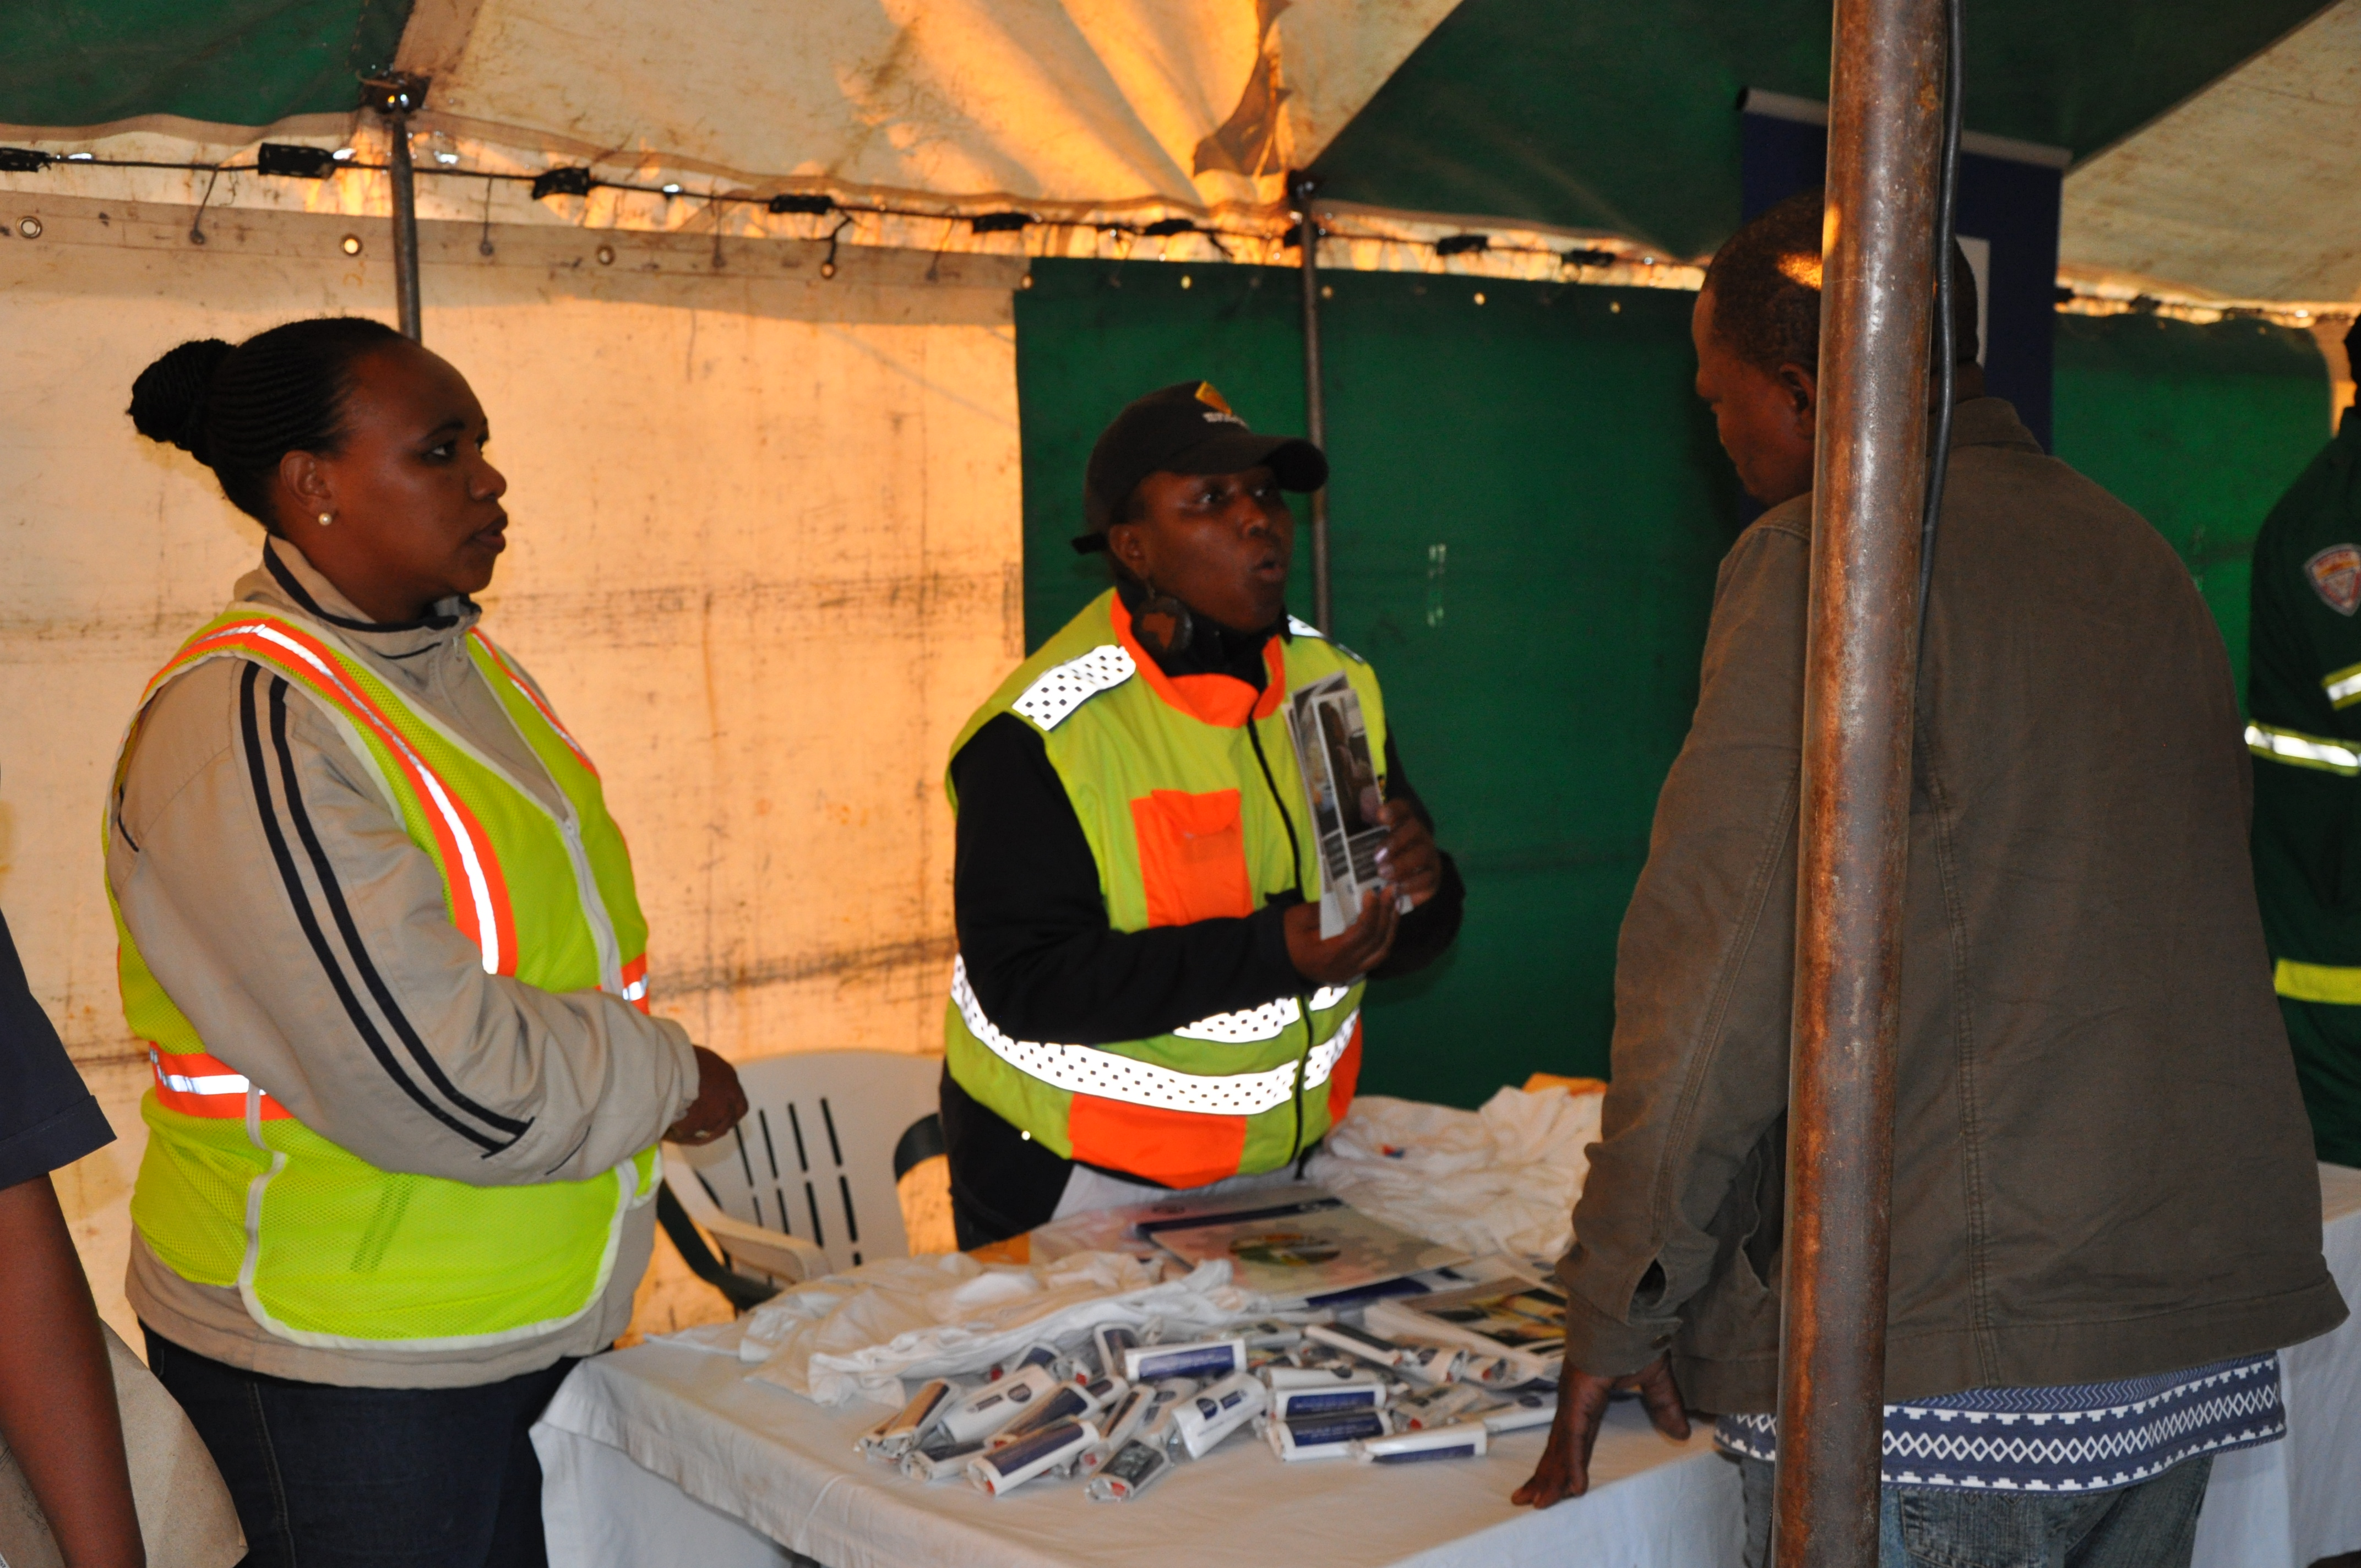 Nombuso Gorata and Zikhona Sikatele speak to a driver about the importance of resting regularly and the breathalyser test.